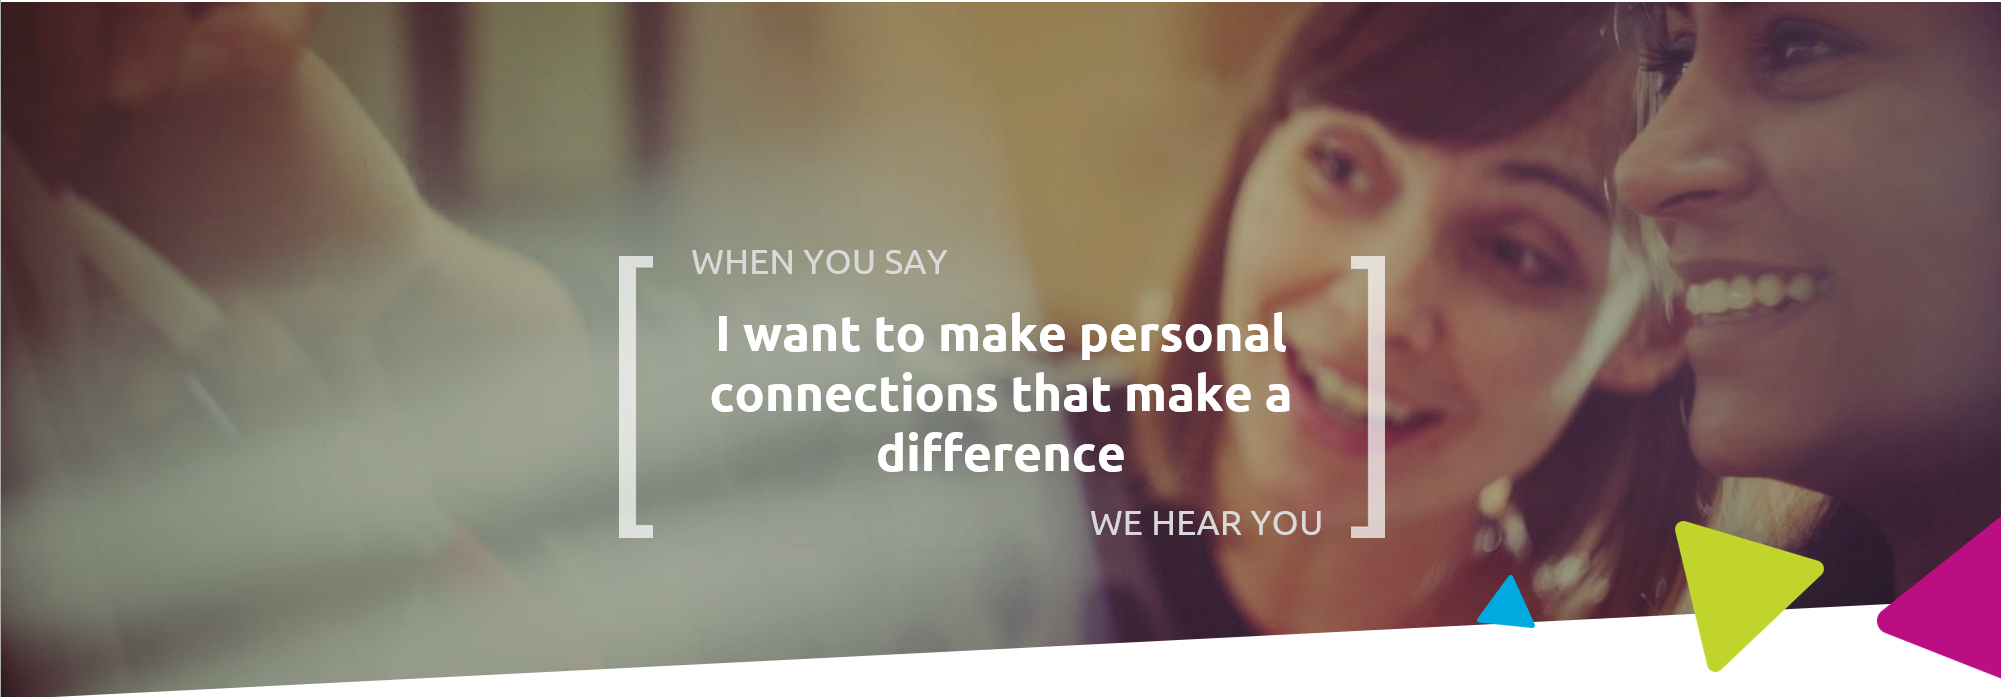 When you say I want to make personal connections that make a difference, we hear you